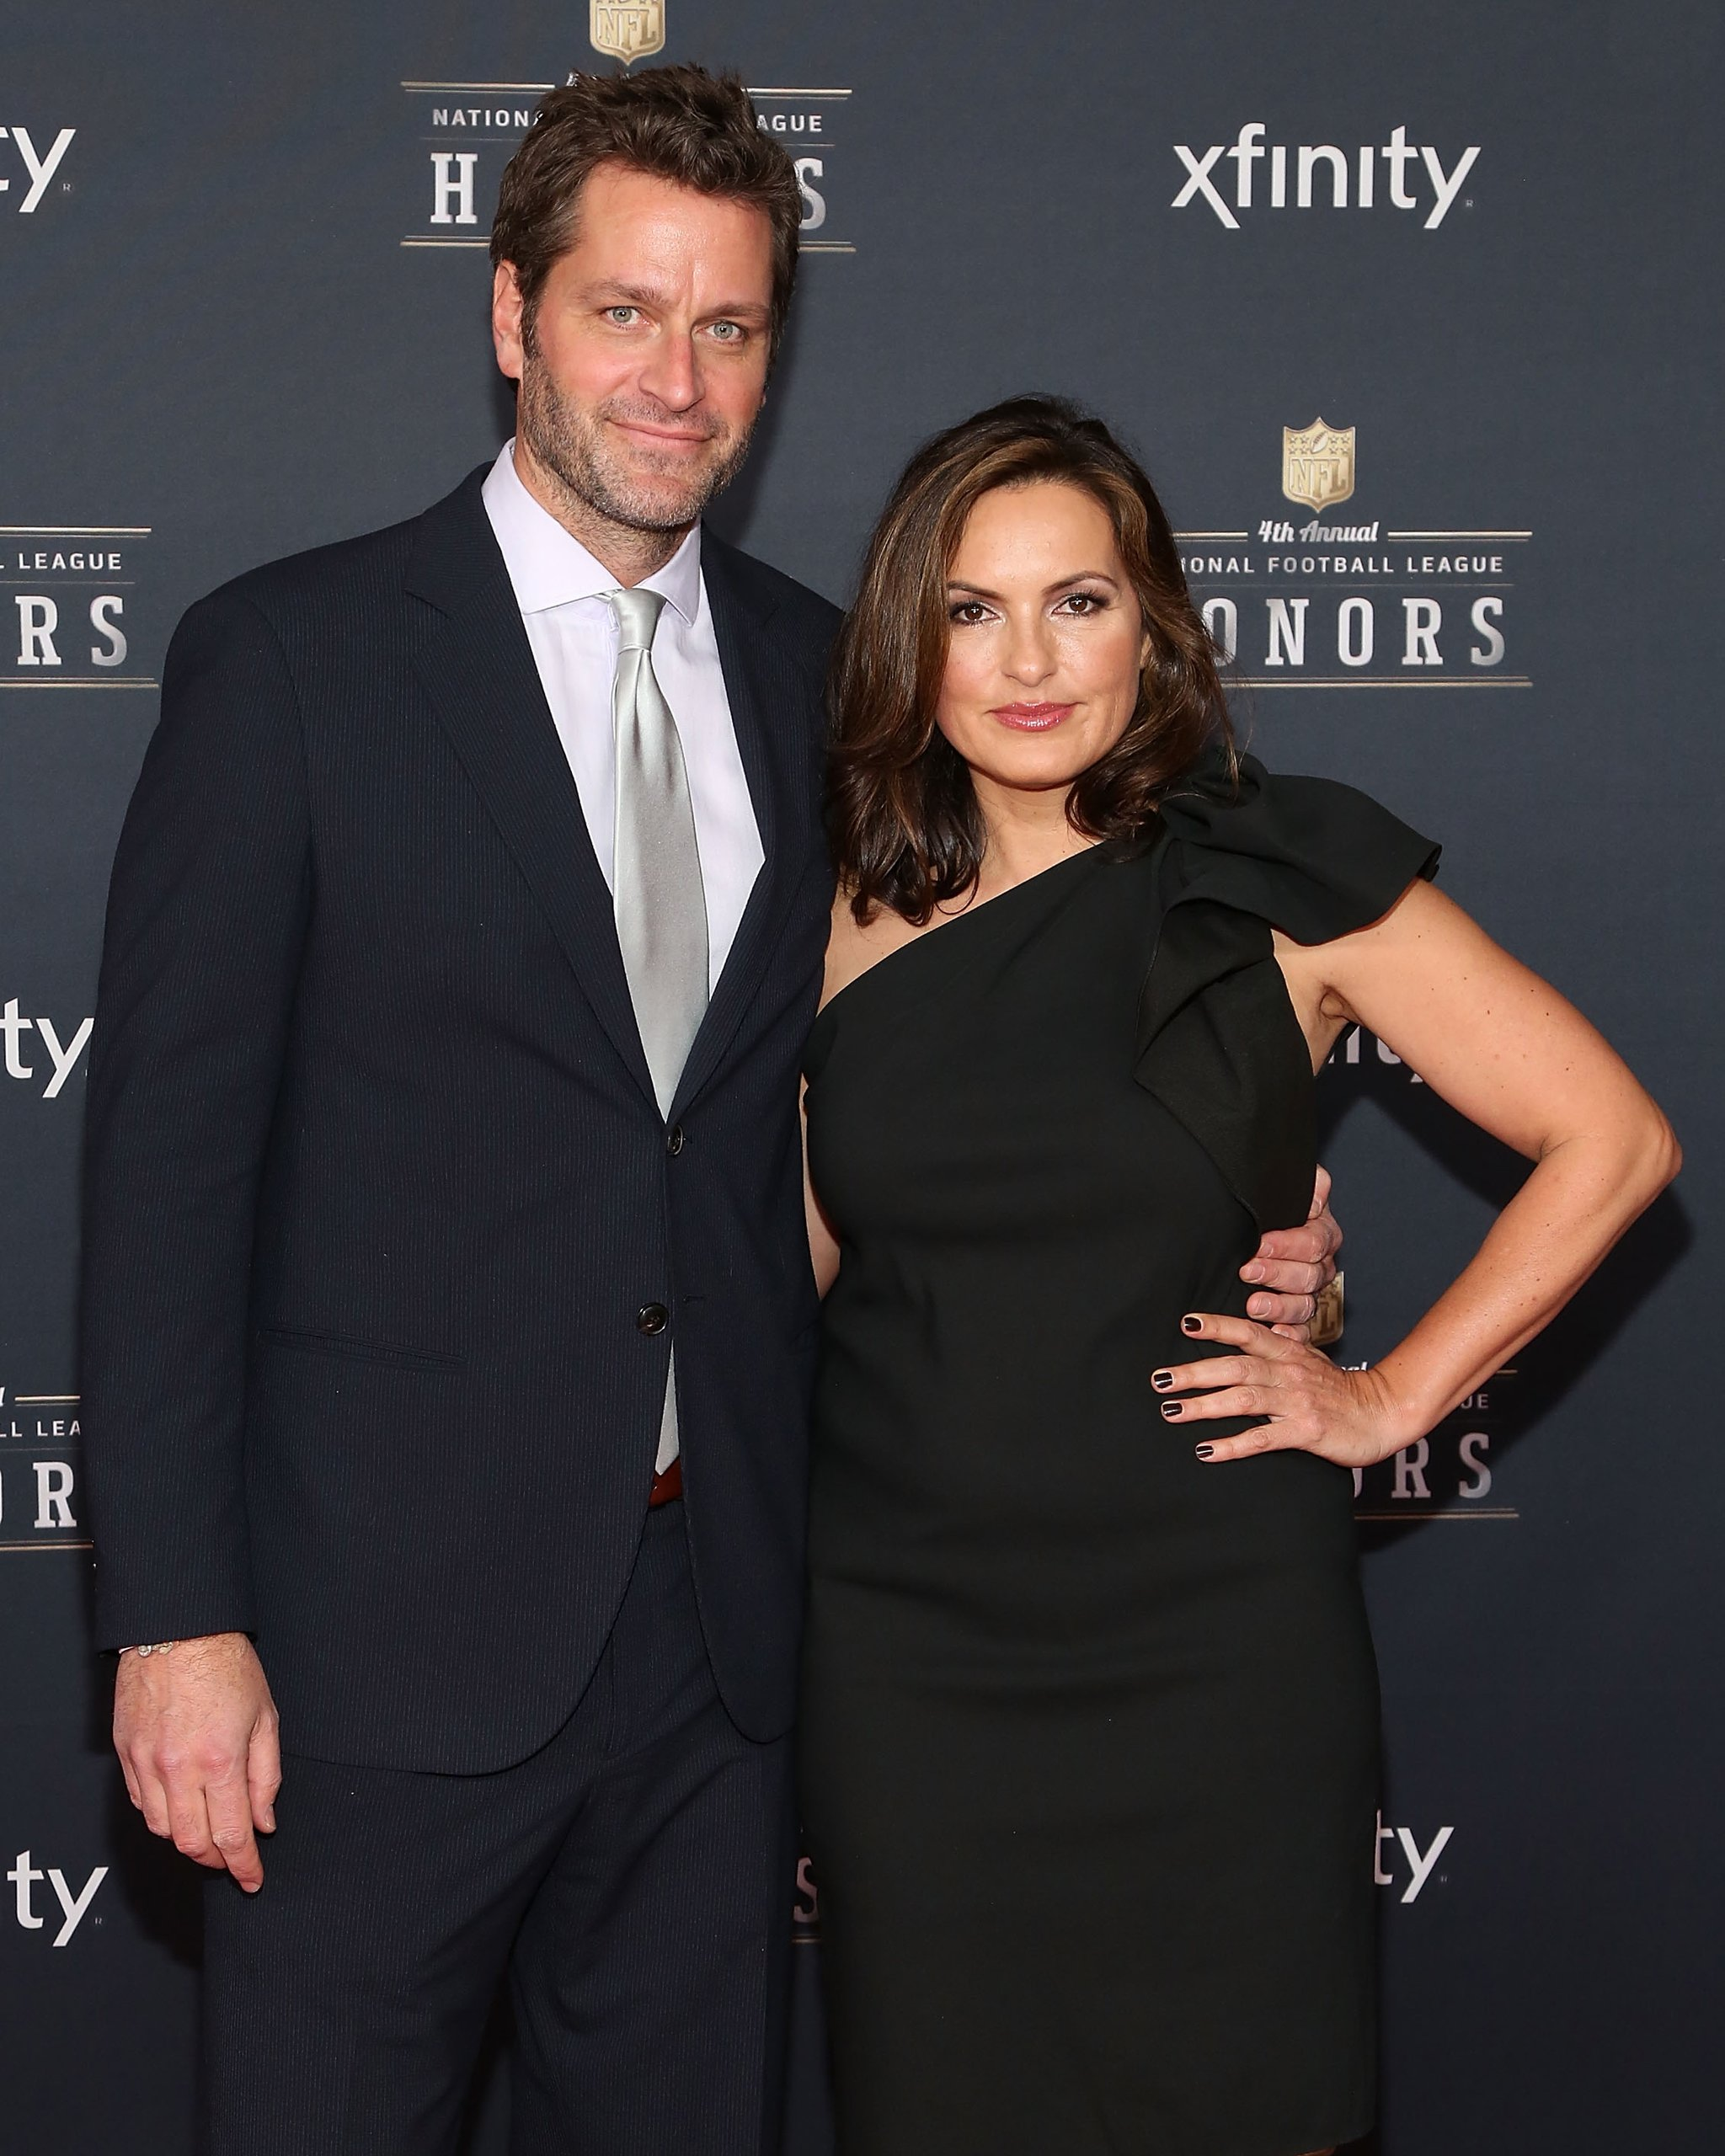 Mariska Hargitay And Peter Hermann Married Life is ...